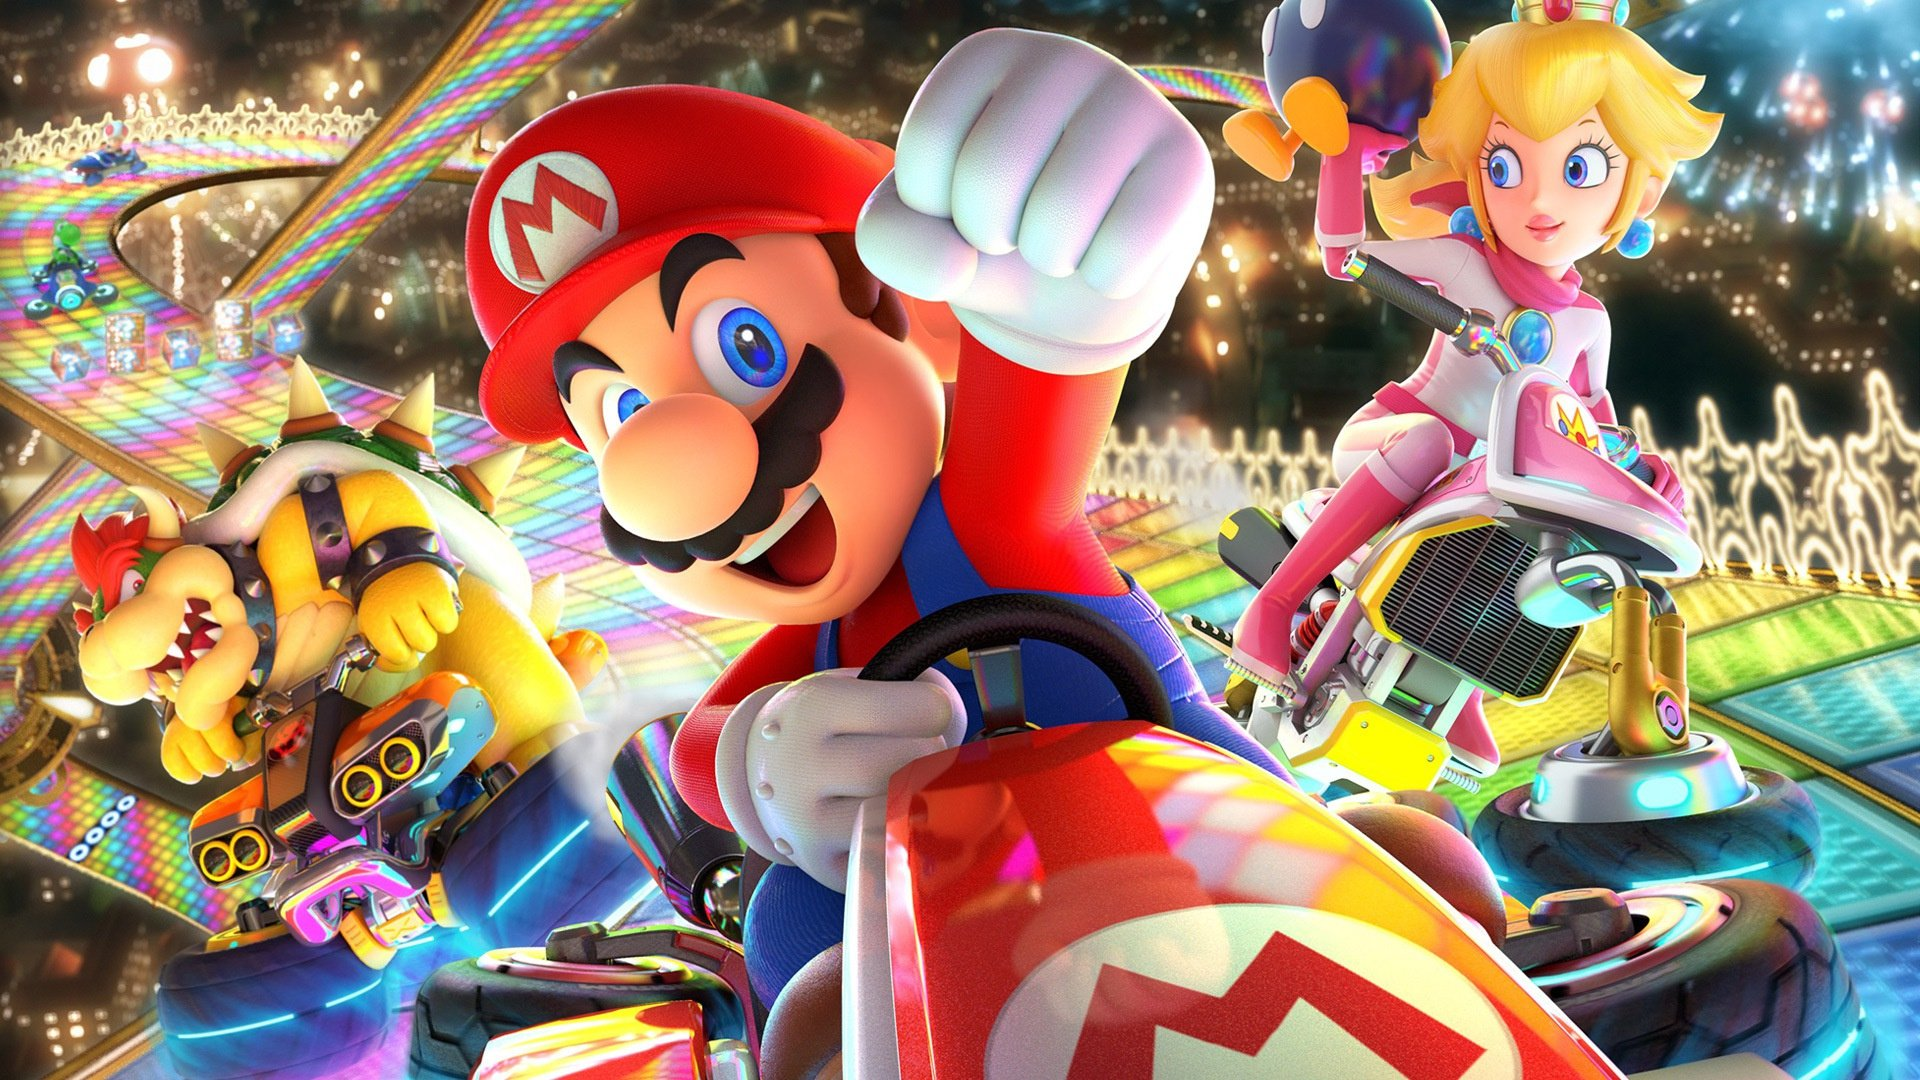 Here S The Best Mario Kart Character According To Actual